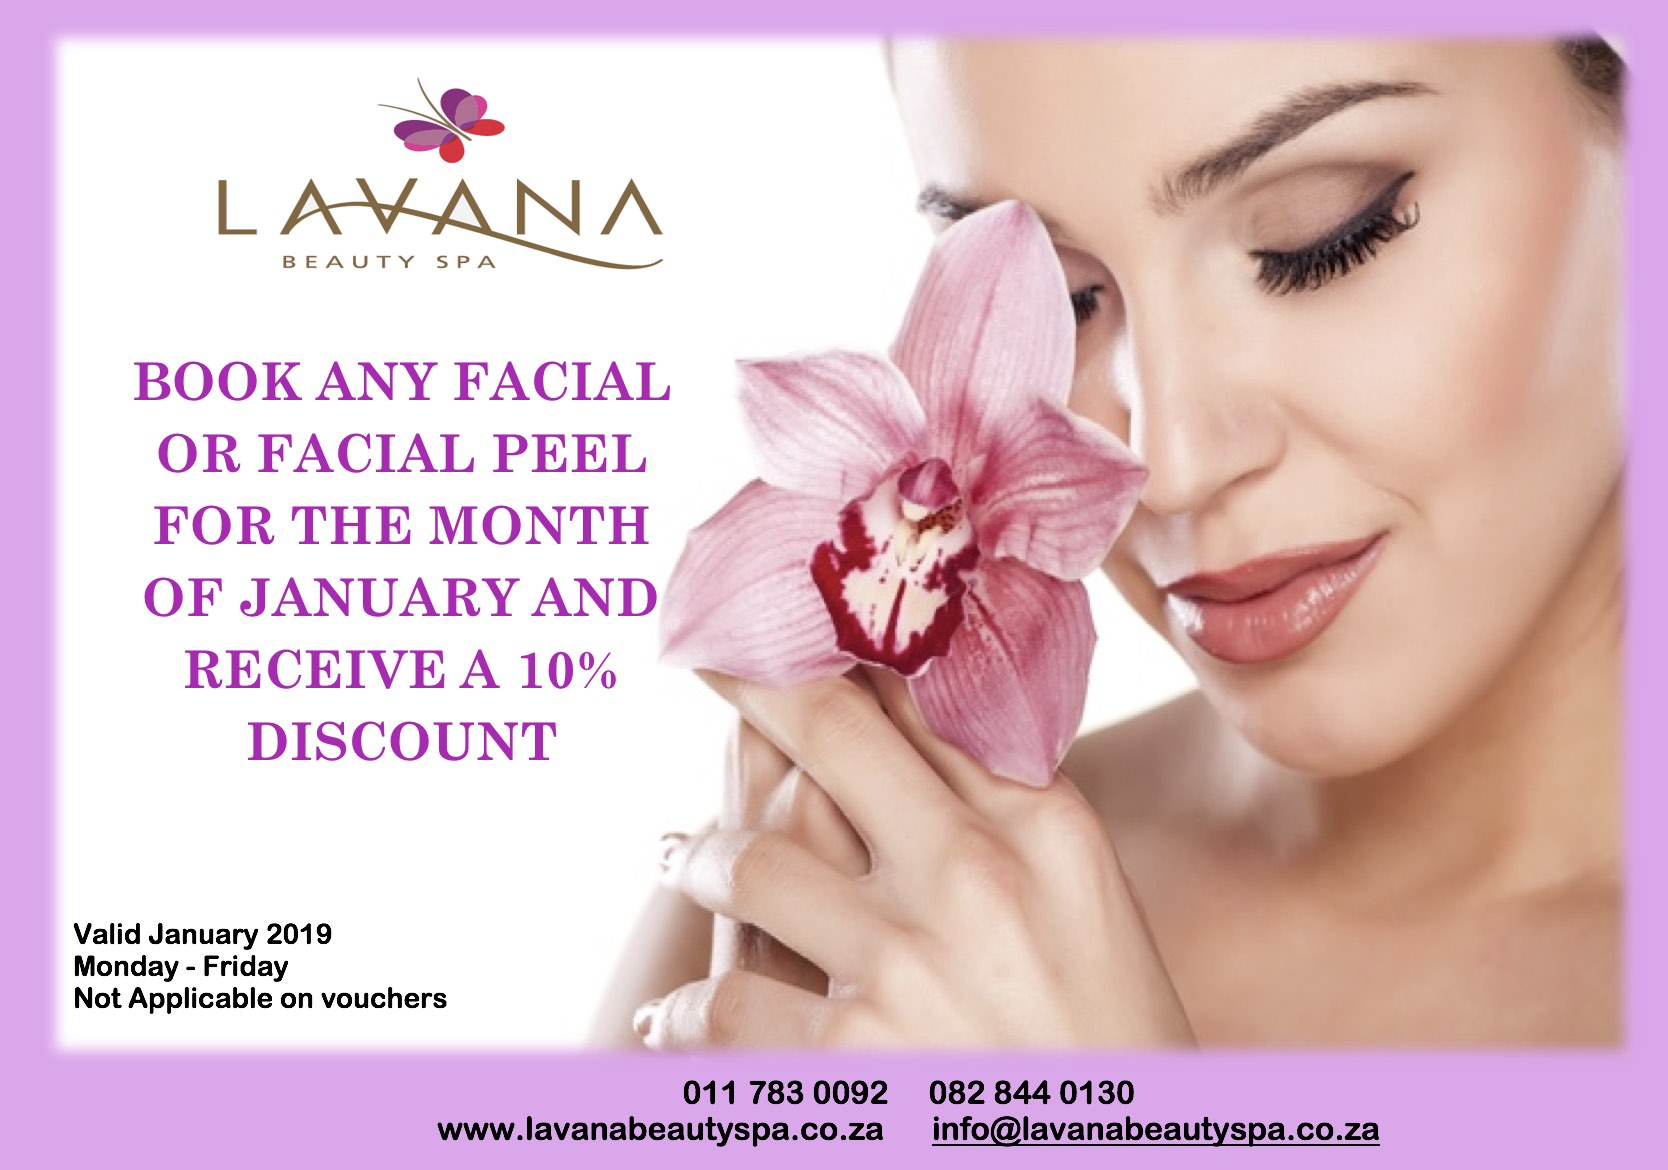 Lavana Beauty Spa January 2019 Facial Special